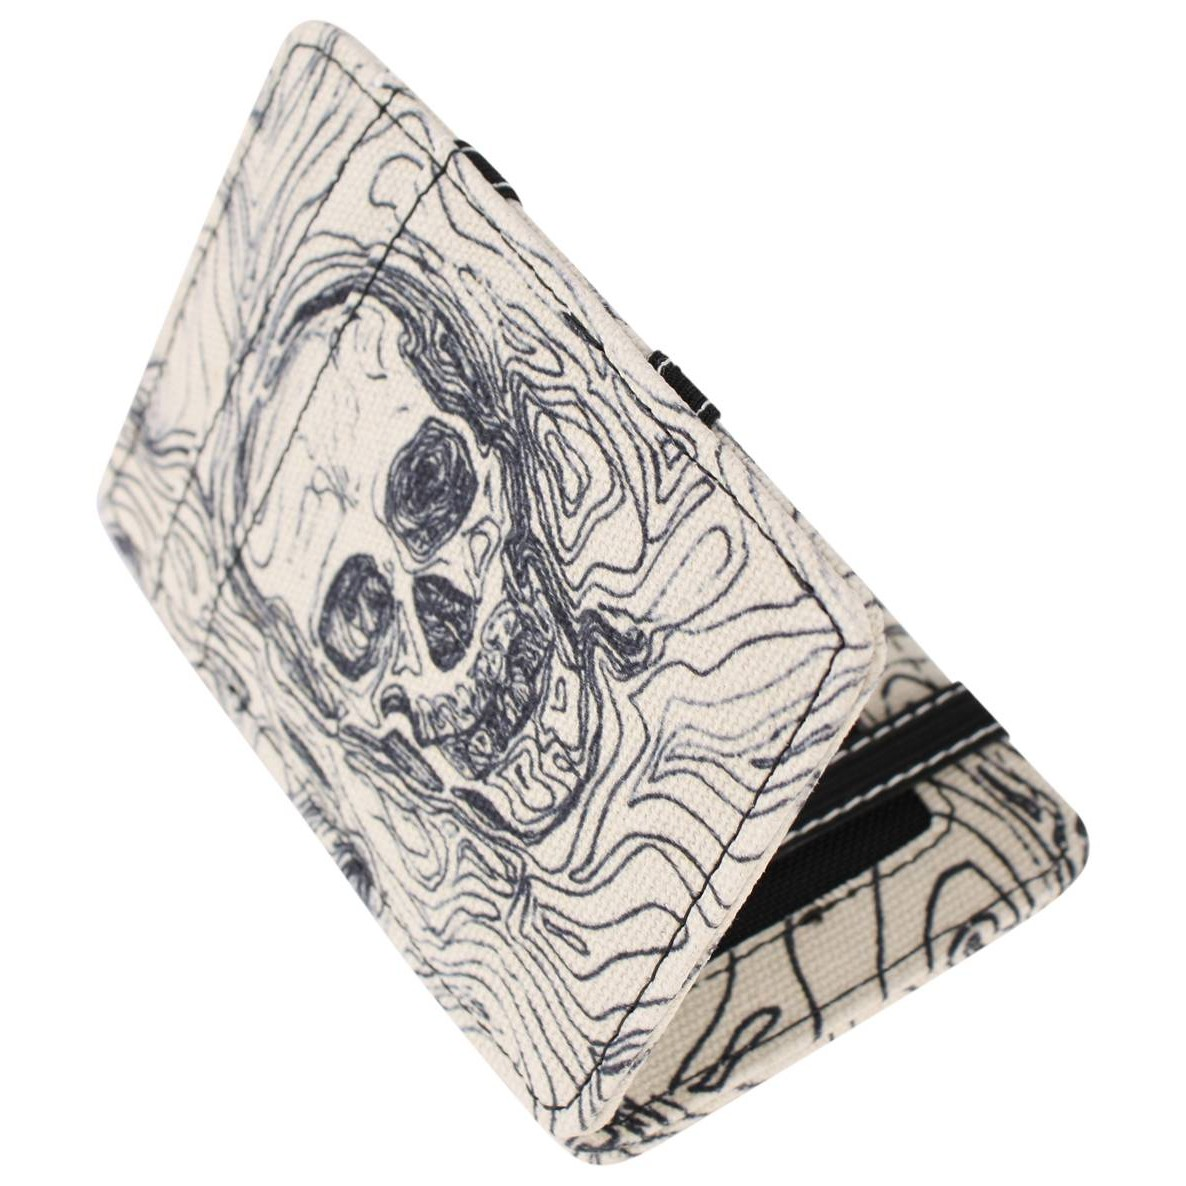 1186x1186 Icon Skull Pencil Drawing Trick Wallet